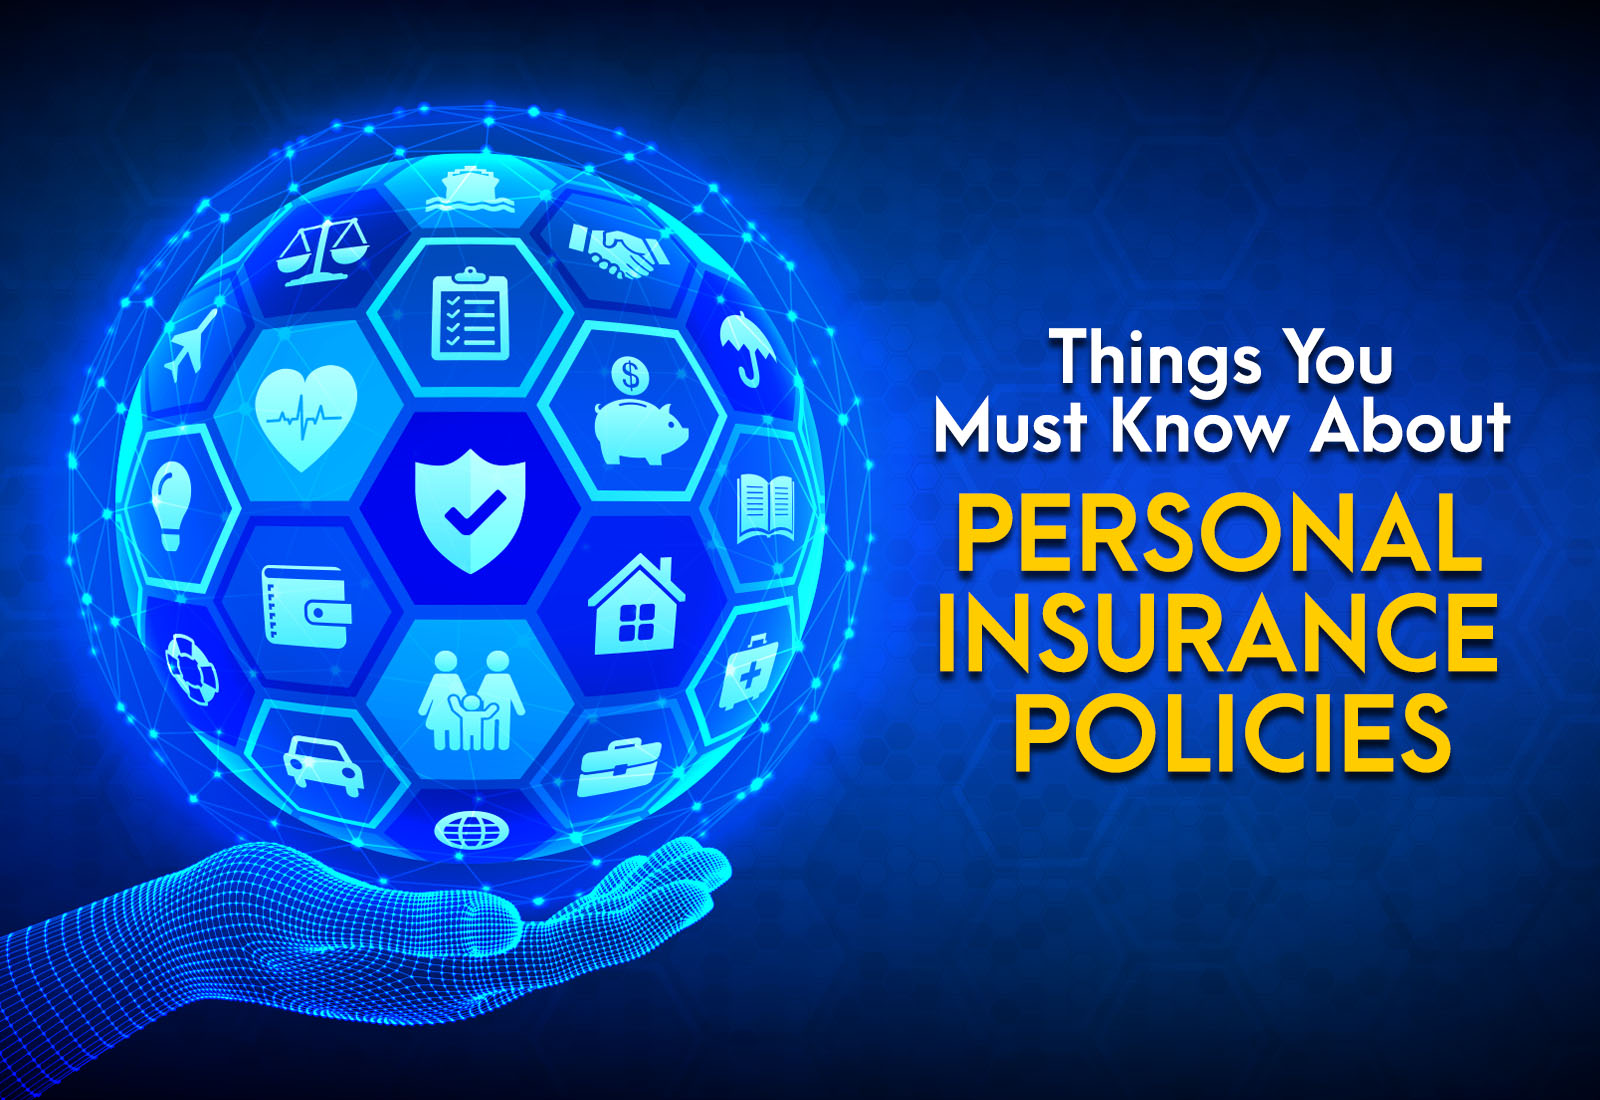 Things You Must Know About Personal Insurance Policies